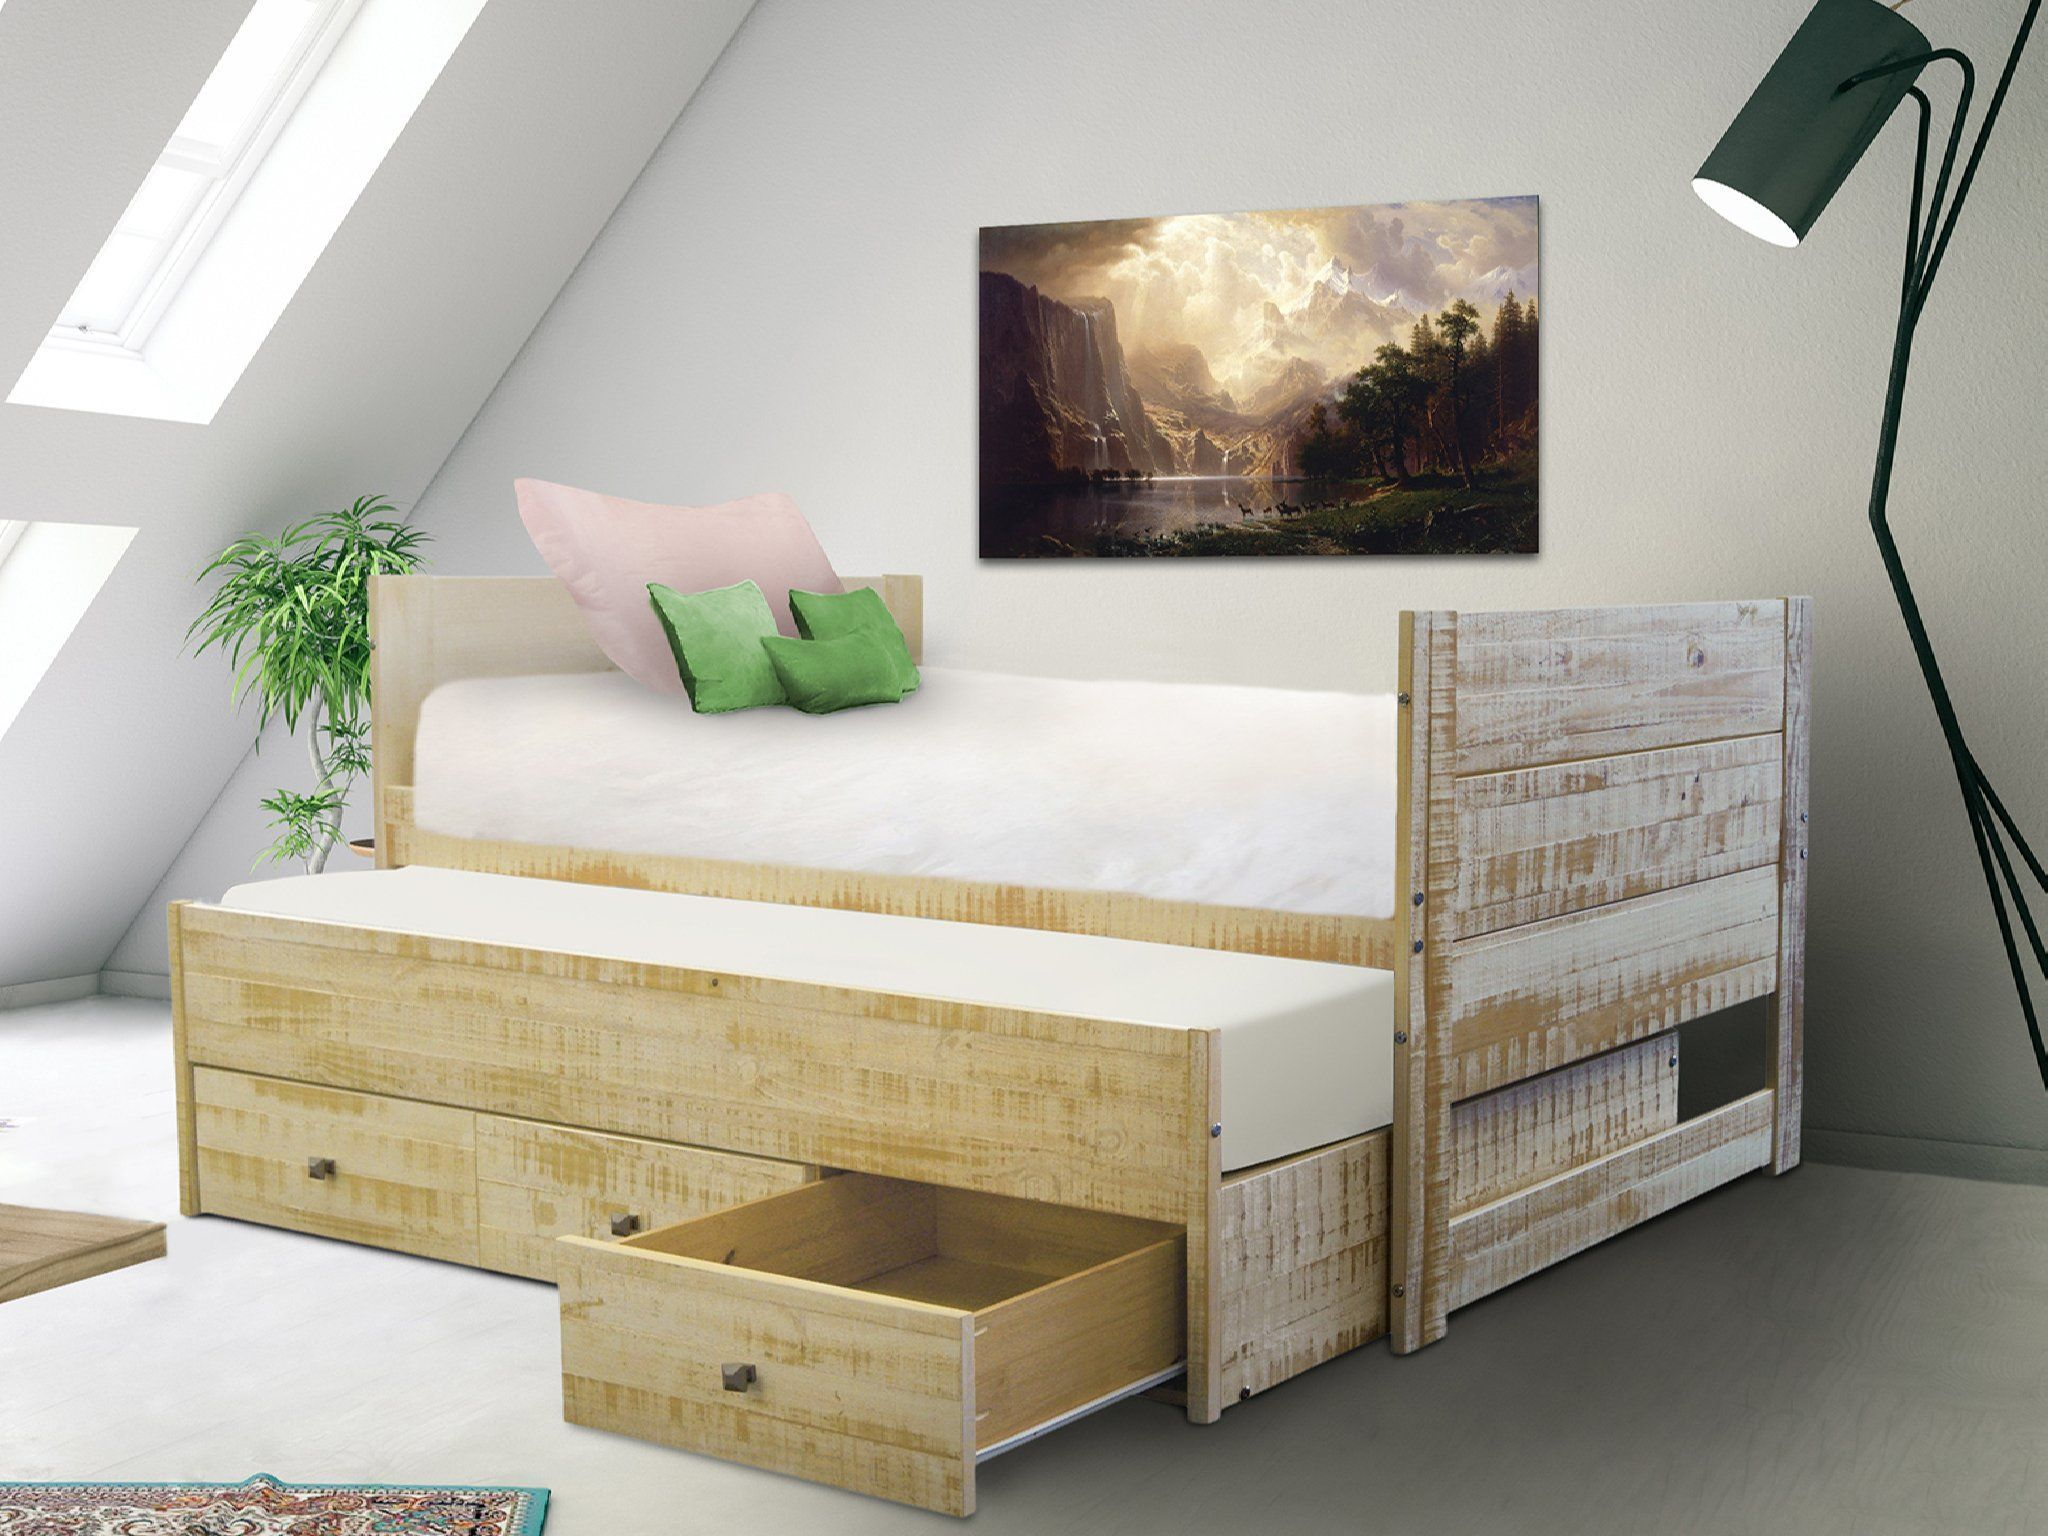 All In One Twin Bed With Trundle And 3 Drawers In Weathered Honey In 2021 Twin Trundle Bed Trundle Bed Twin Loft Bed Twin bed with trundle and storage